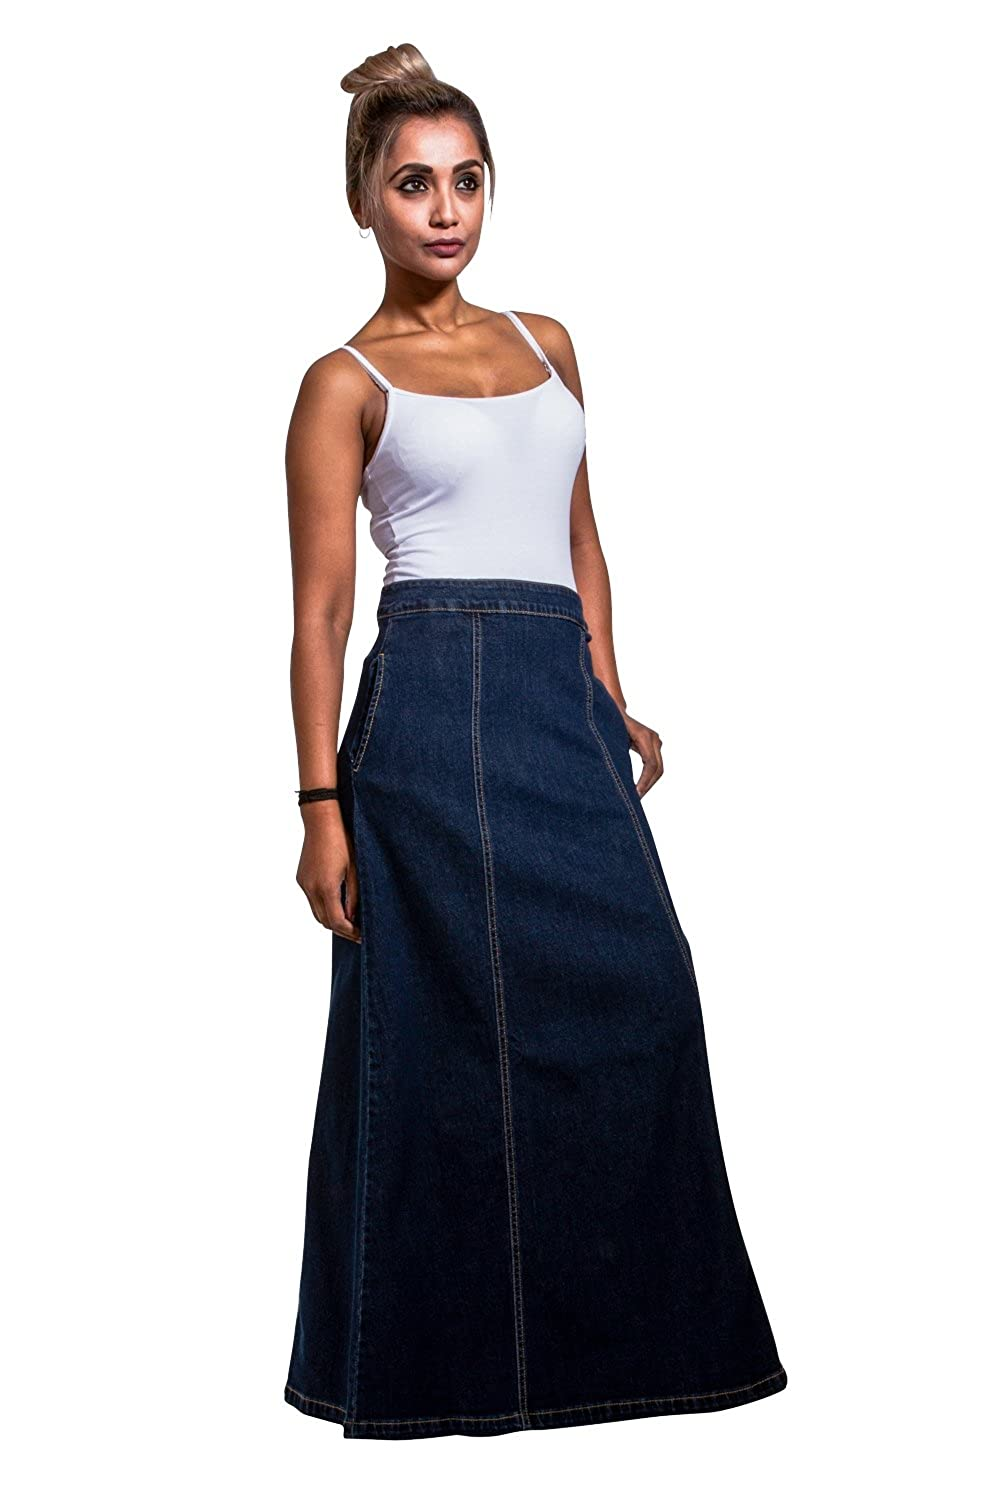 USKEES MATILDA Denim Maxi Skirt  Darkwash Long Jean Skirt with Stretch US 1020